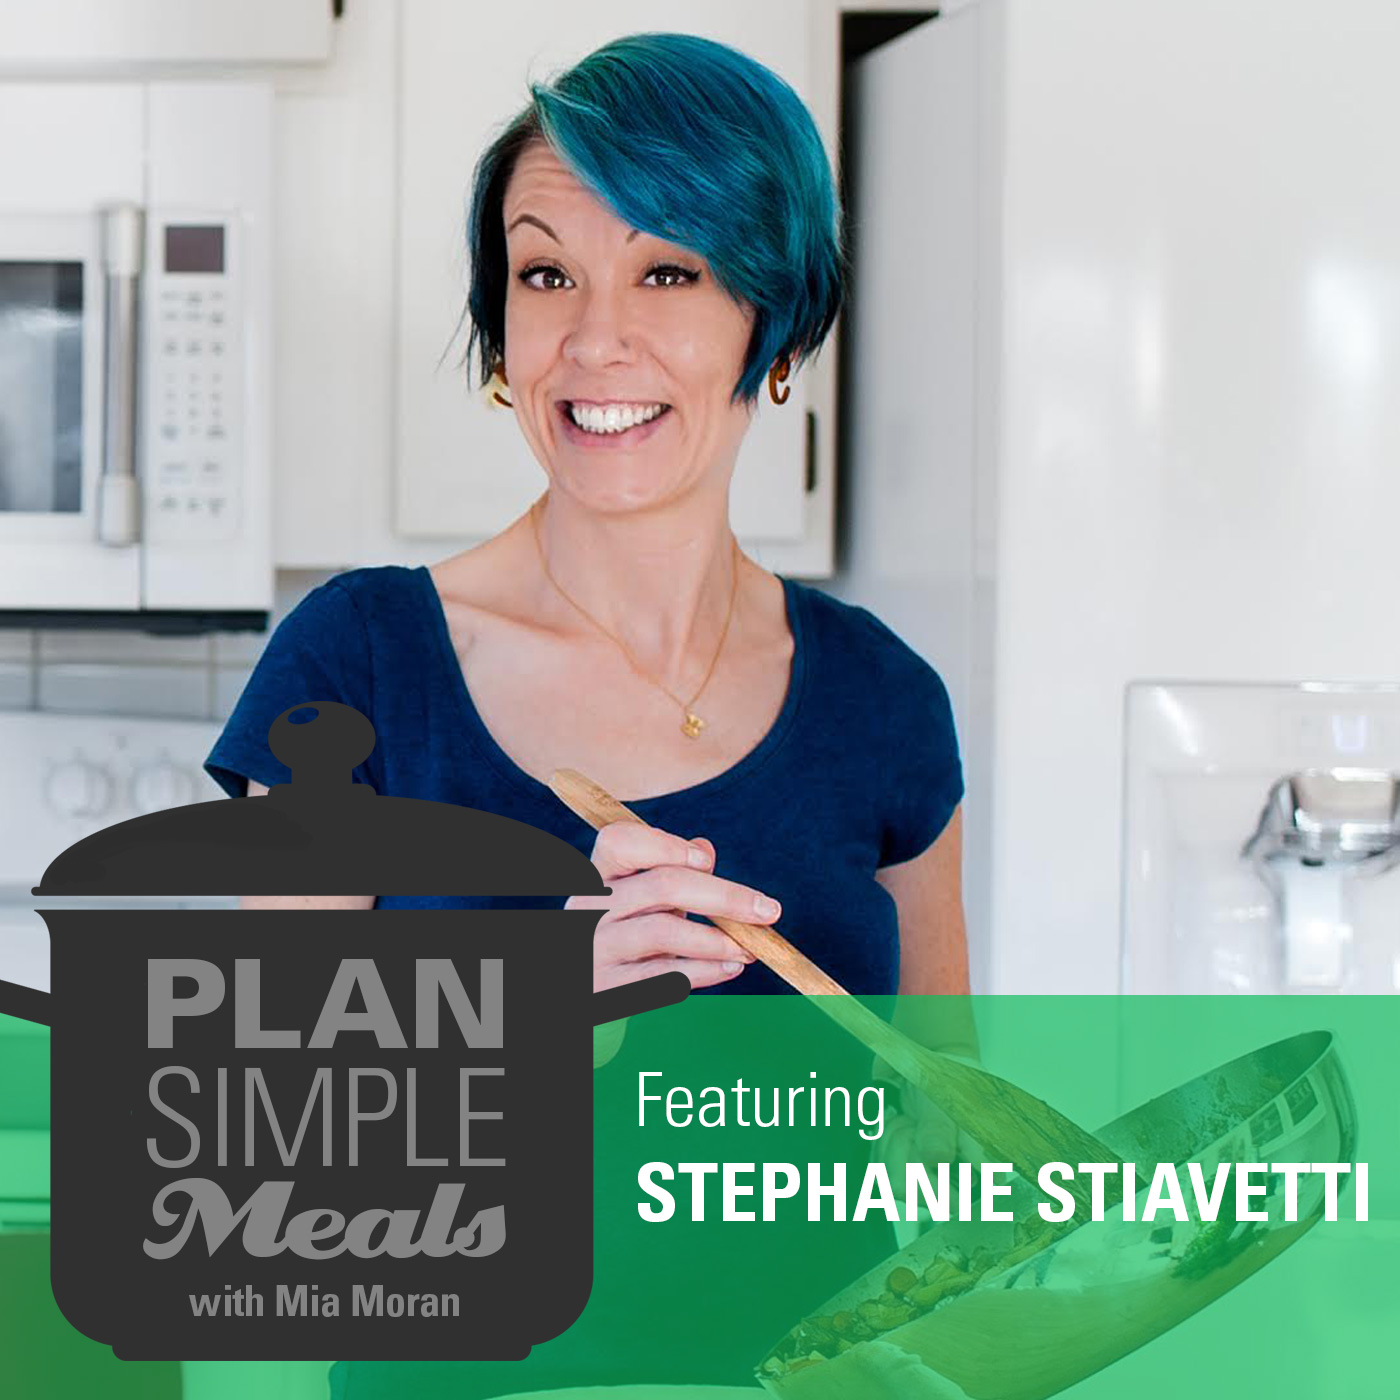 Cooking Does Not Have To Be Stressful With Stephanie Stiavetti